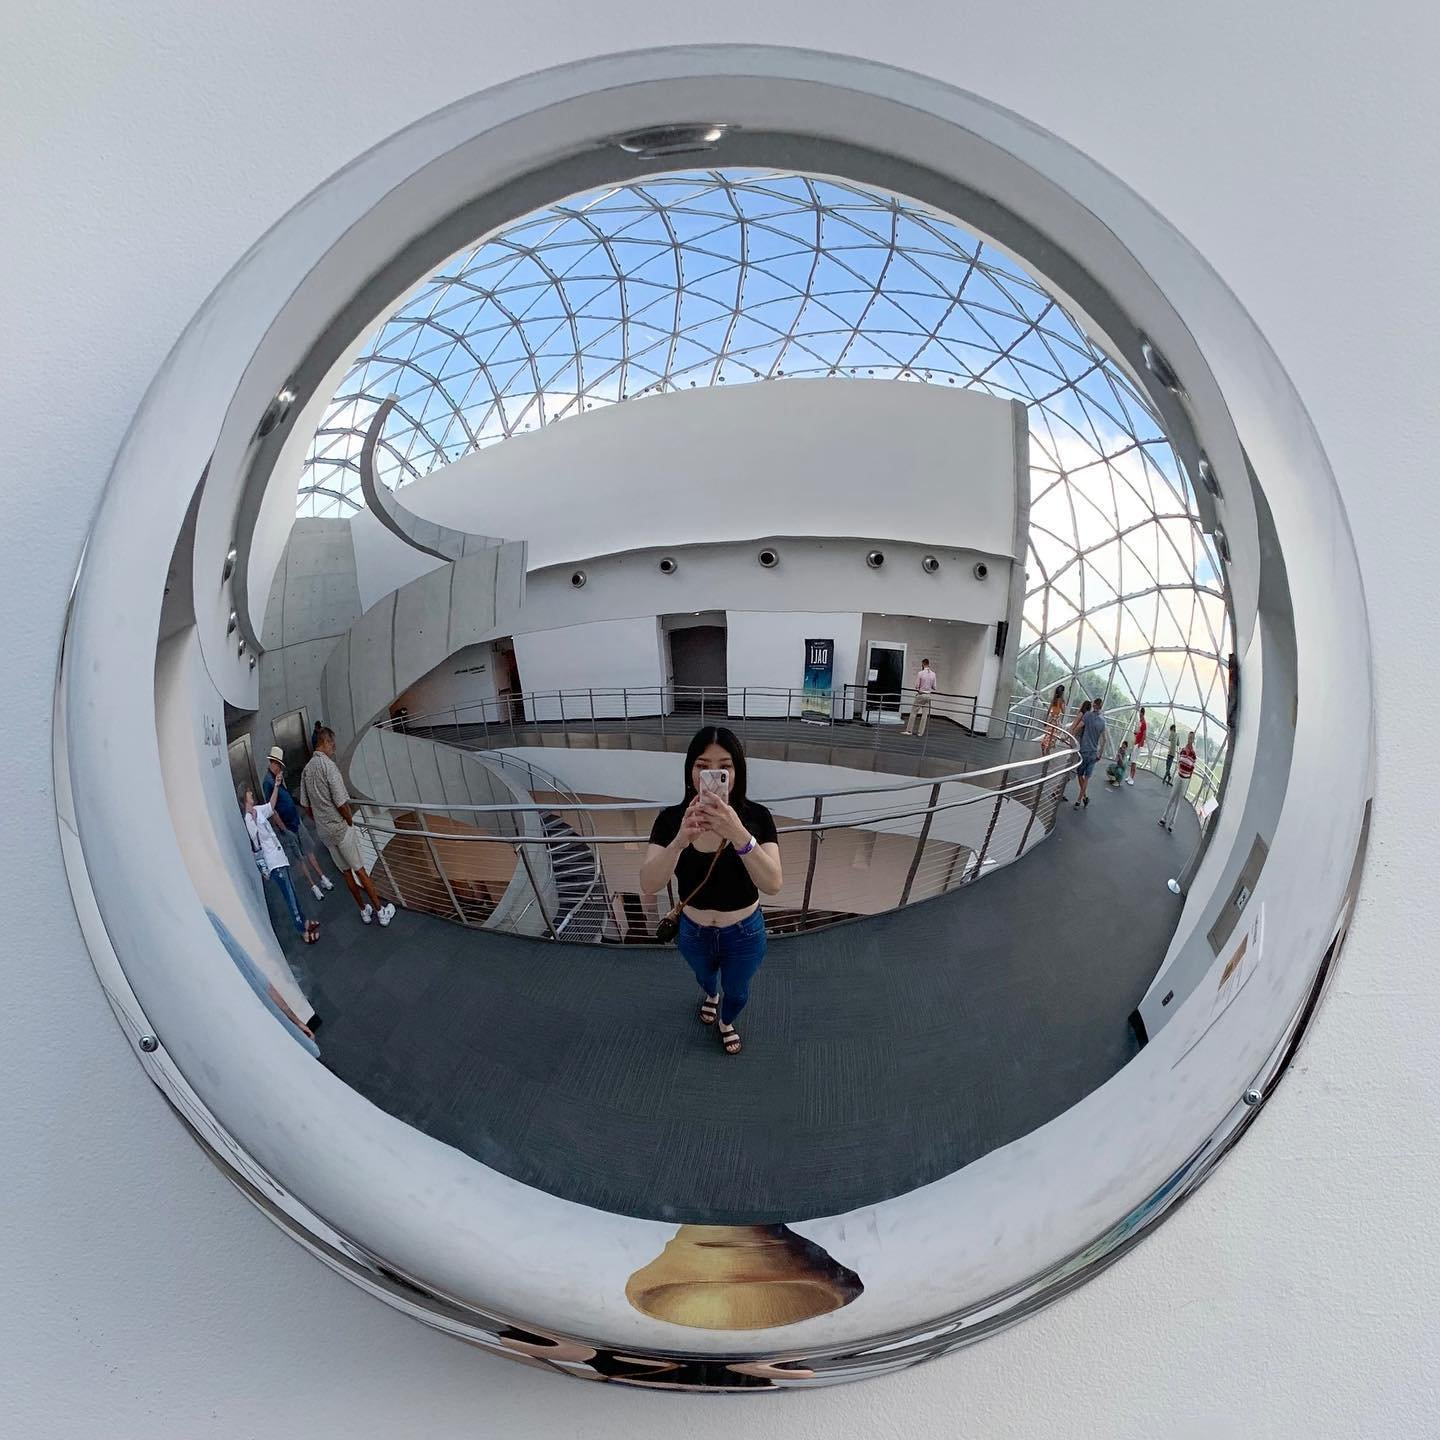 In a bubble 👁 . . The Dali museum is definitely a place to check out. It's one of the best museums that I've been to . . . #dalimuseum #stpete #stpetefl #saintpetersburgflorida #igersstpete #lovefl #liveamplified #ilovetheburg #sunshineshere #tampa #florida #museums #bloggersunder500 #smallblogger #bloggertribe #discoverunder2k #bloggersunder1k #floridablogger #girlsinmuseums #museumselfie #artmuseums #selfieofday #artsviral #instaartsy #instaartexplorer #instaartlovers #wanderlove #wanderers #exploreflorida #explorestpete